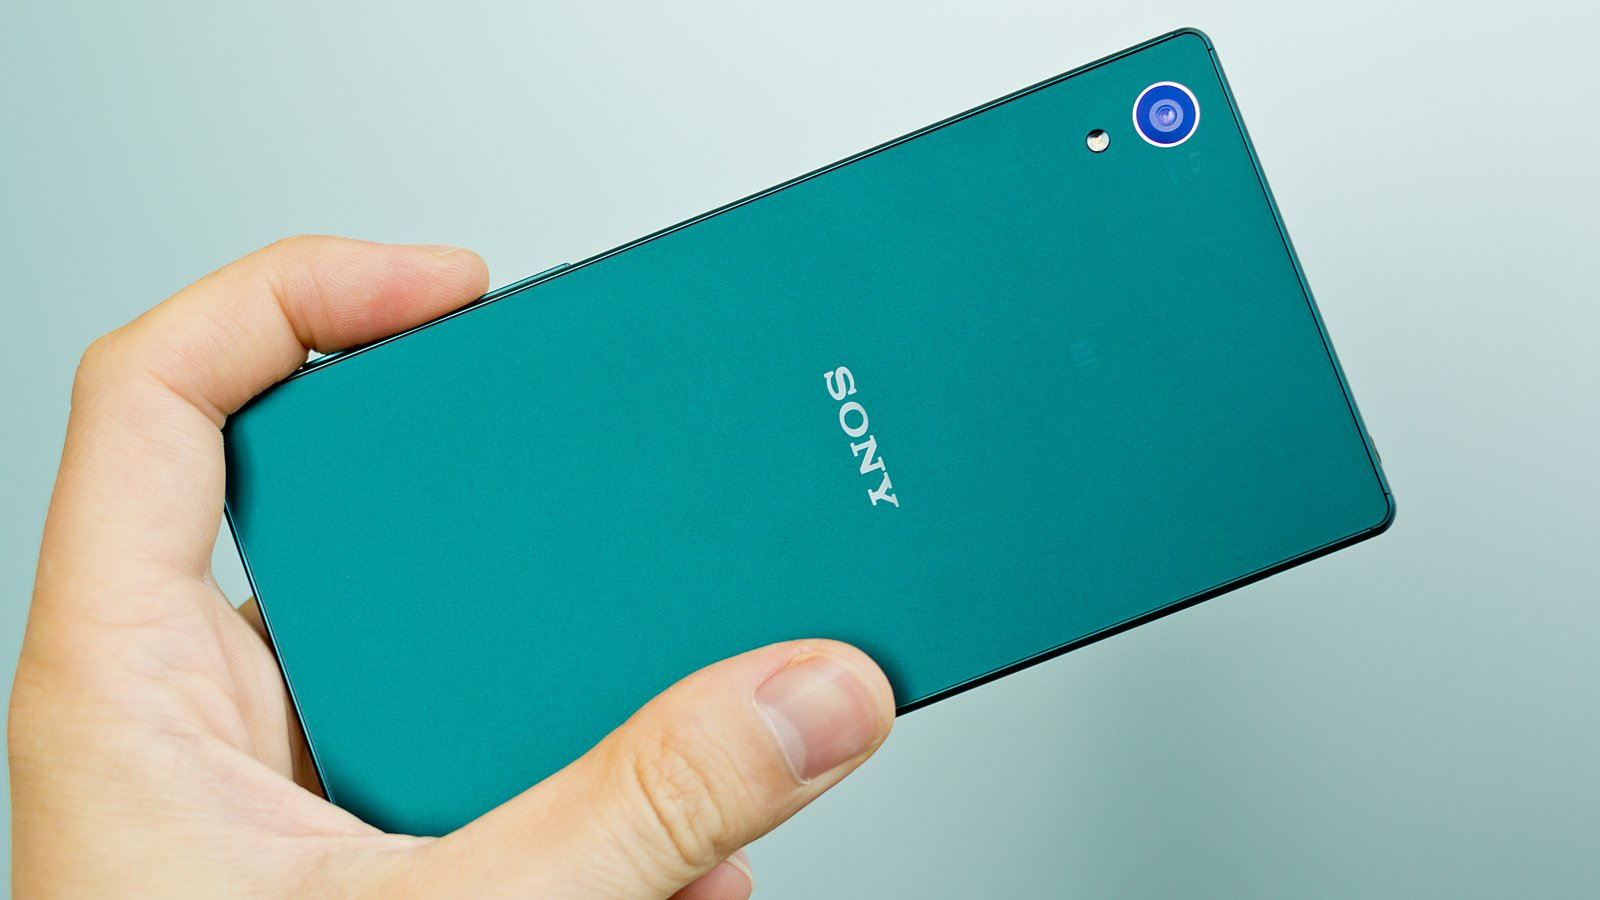 Sony Xperia Z5 Camera New Function 23MP Is Now Better